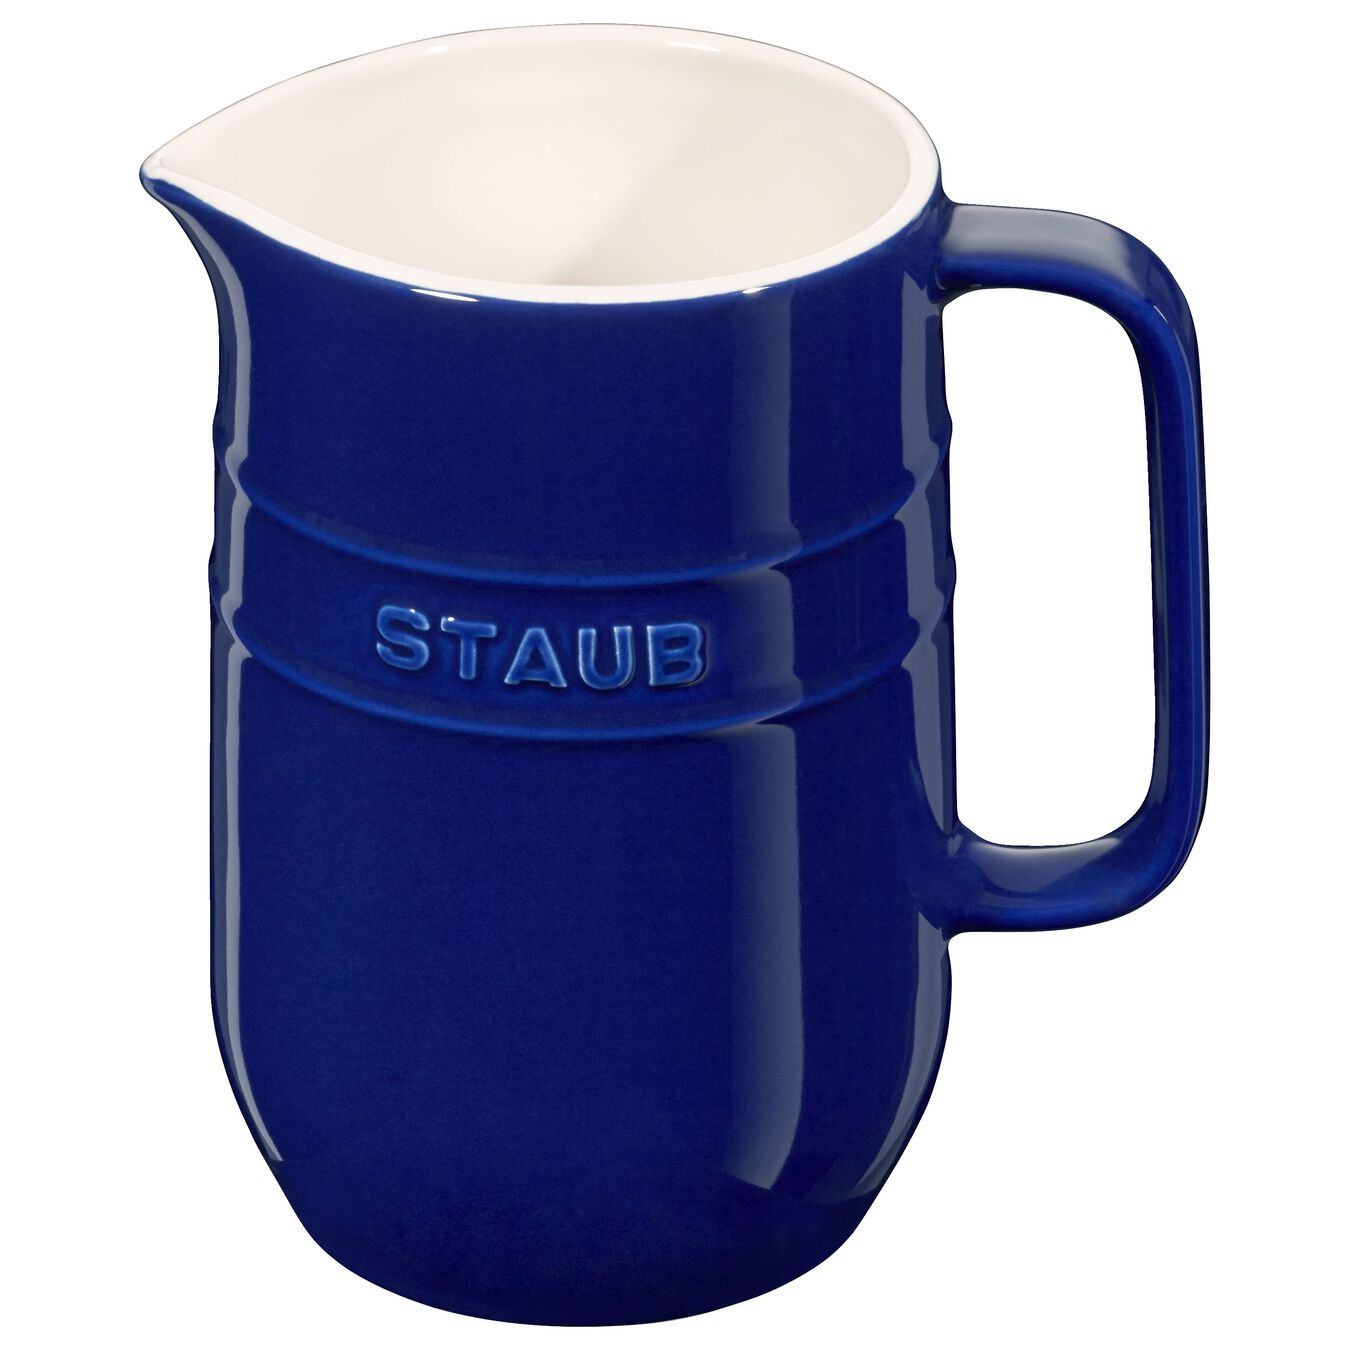 1 l Ceramic Pitcher, Dark-Blue,,large 1